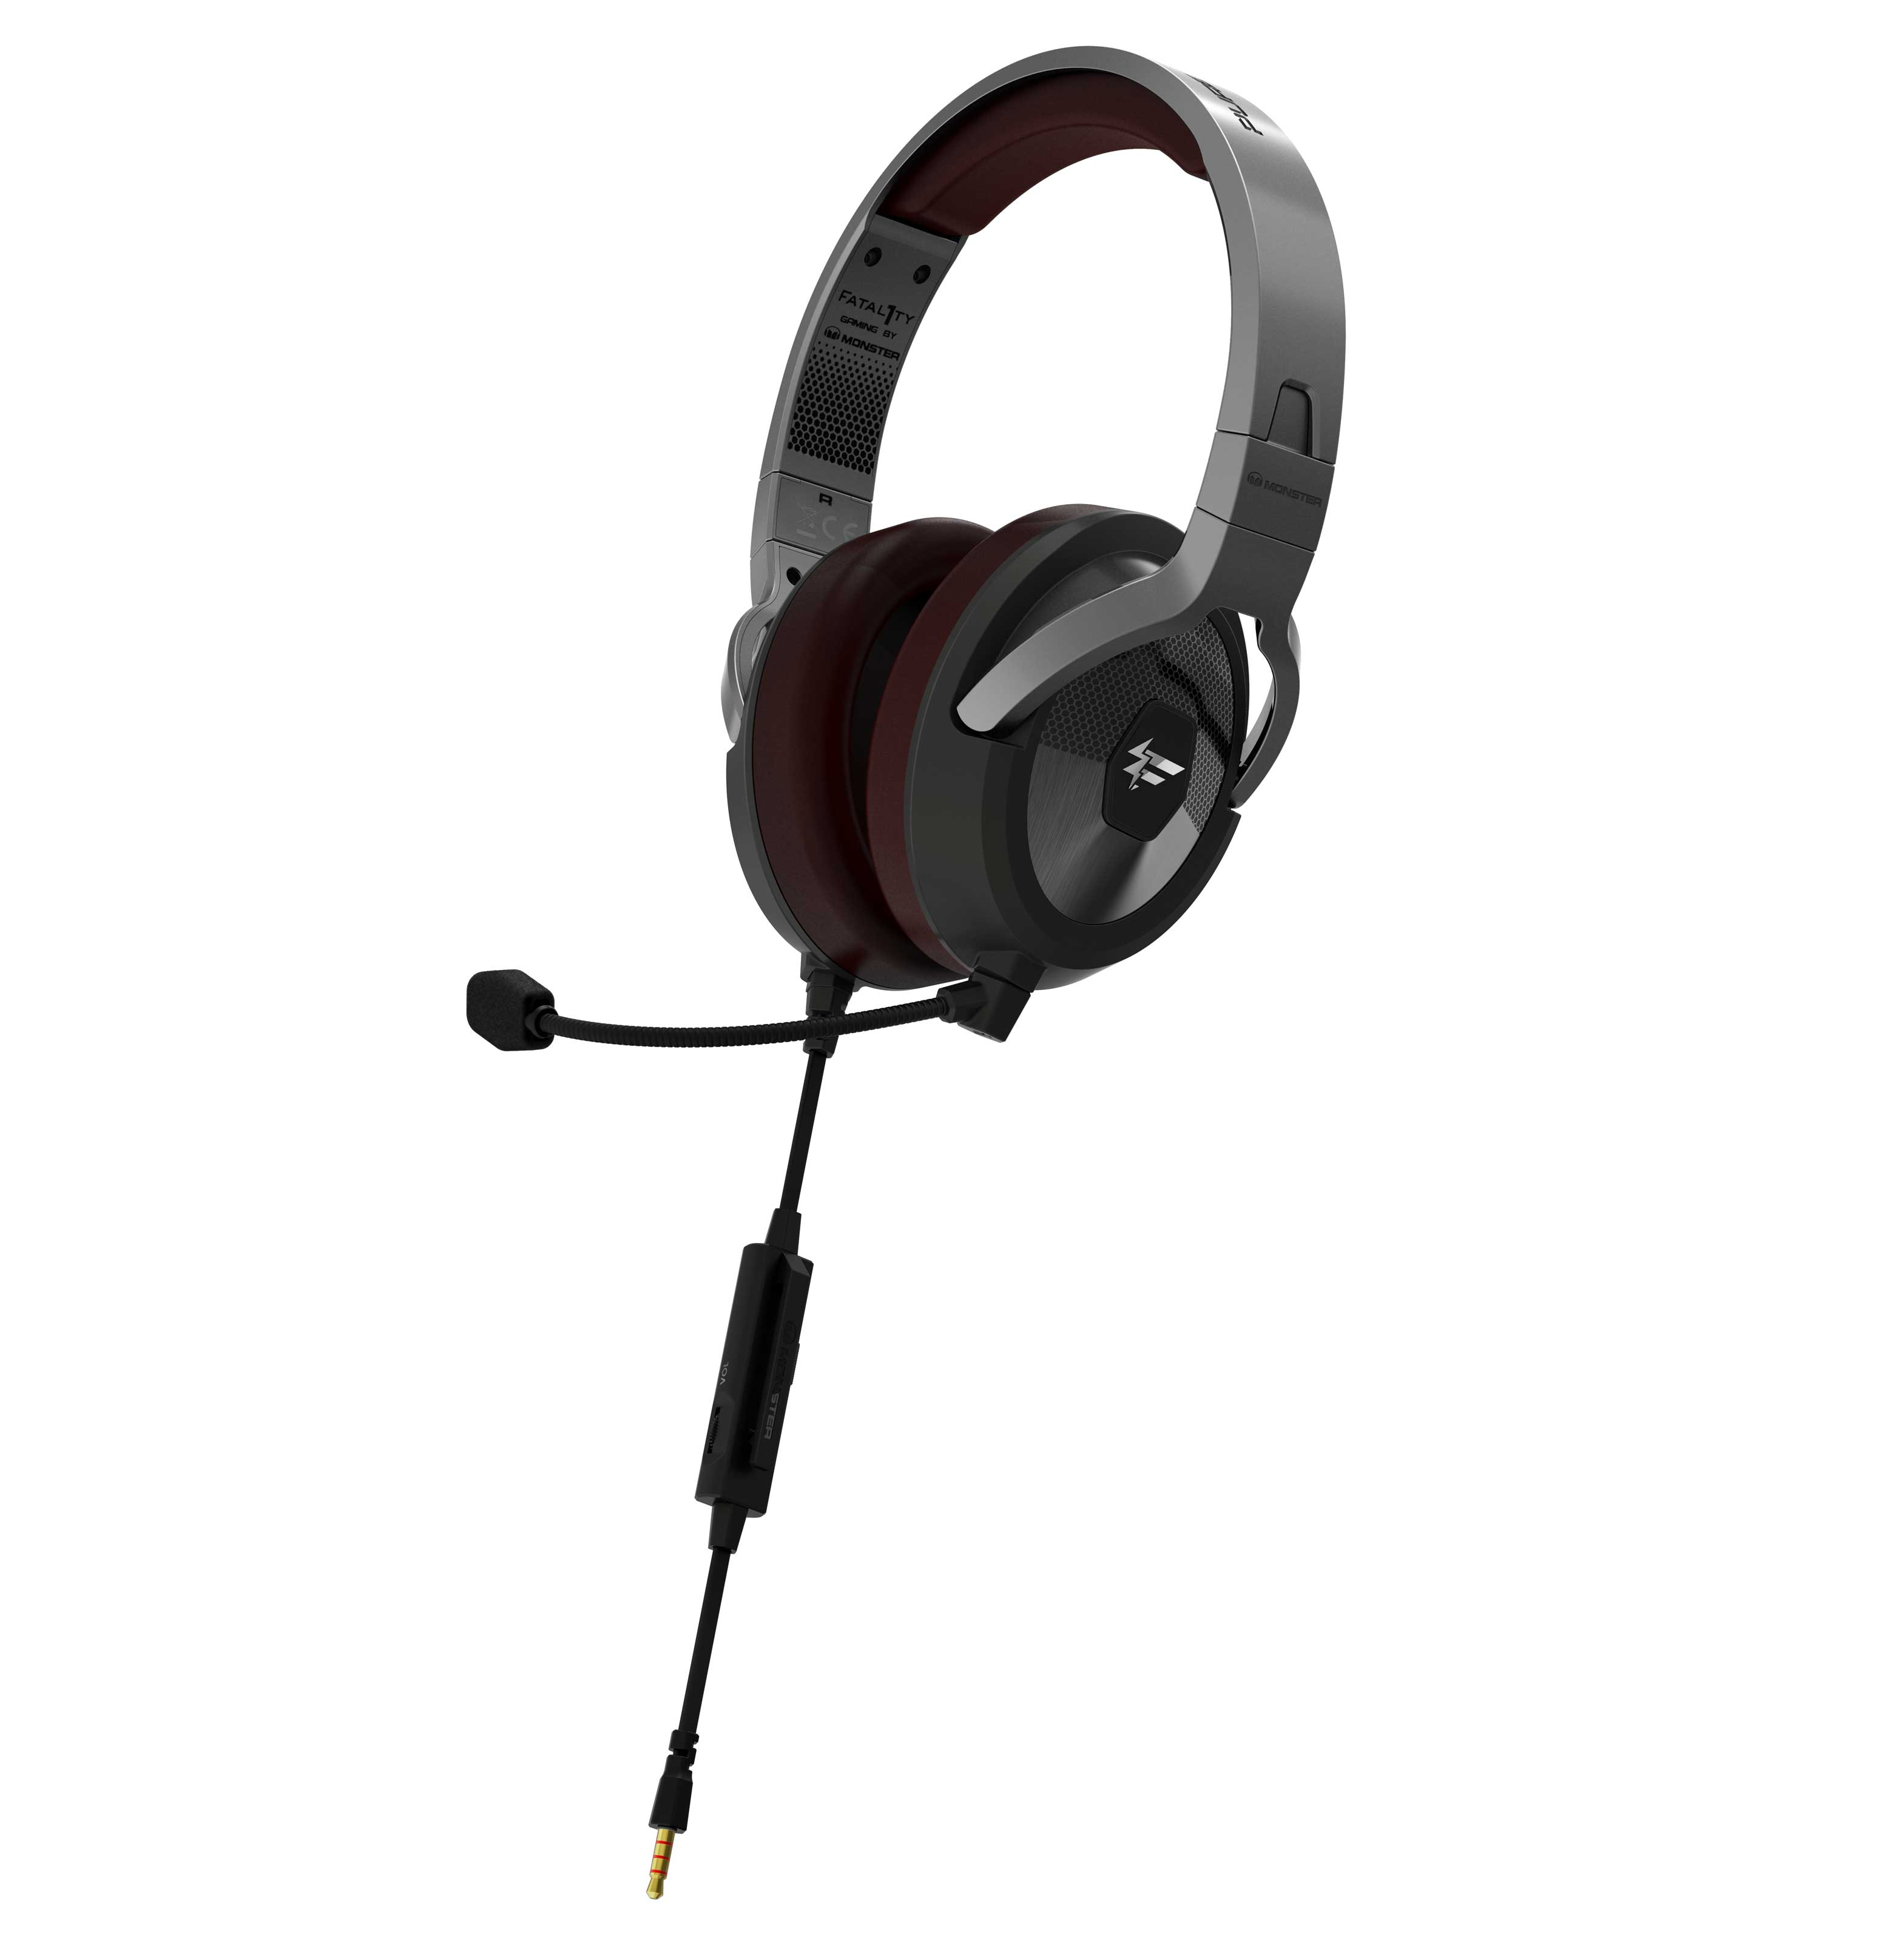 Monster FXM200 Gaming Headset Quarter View